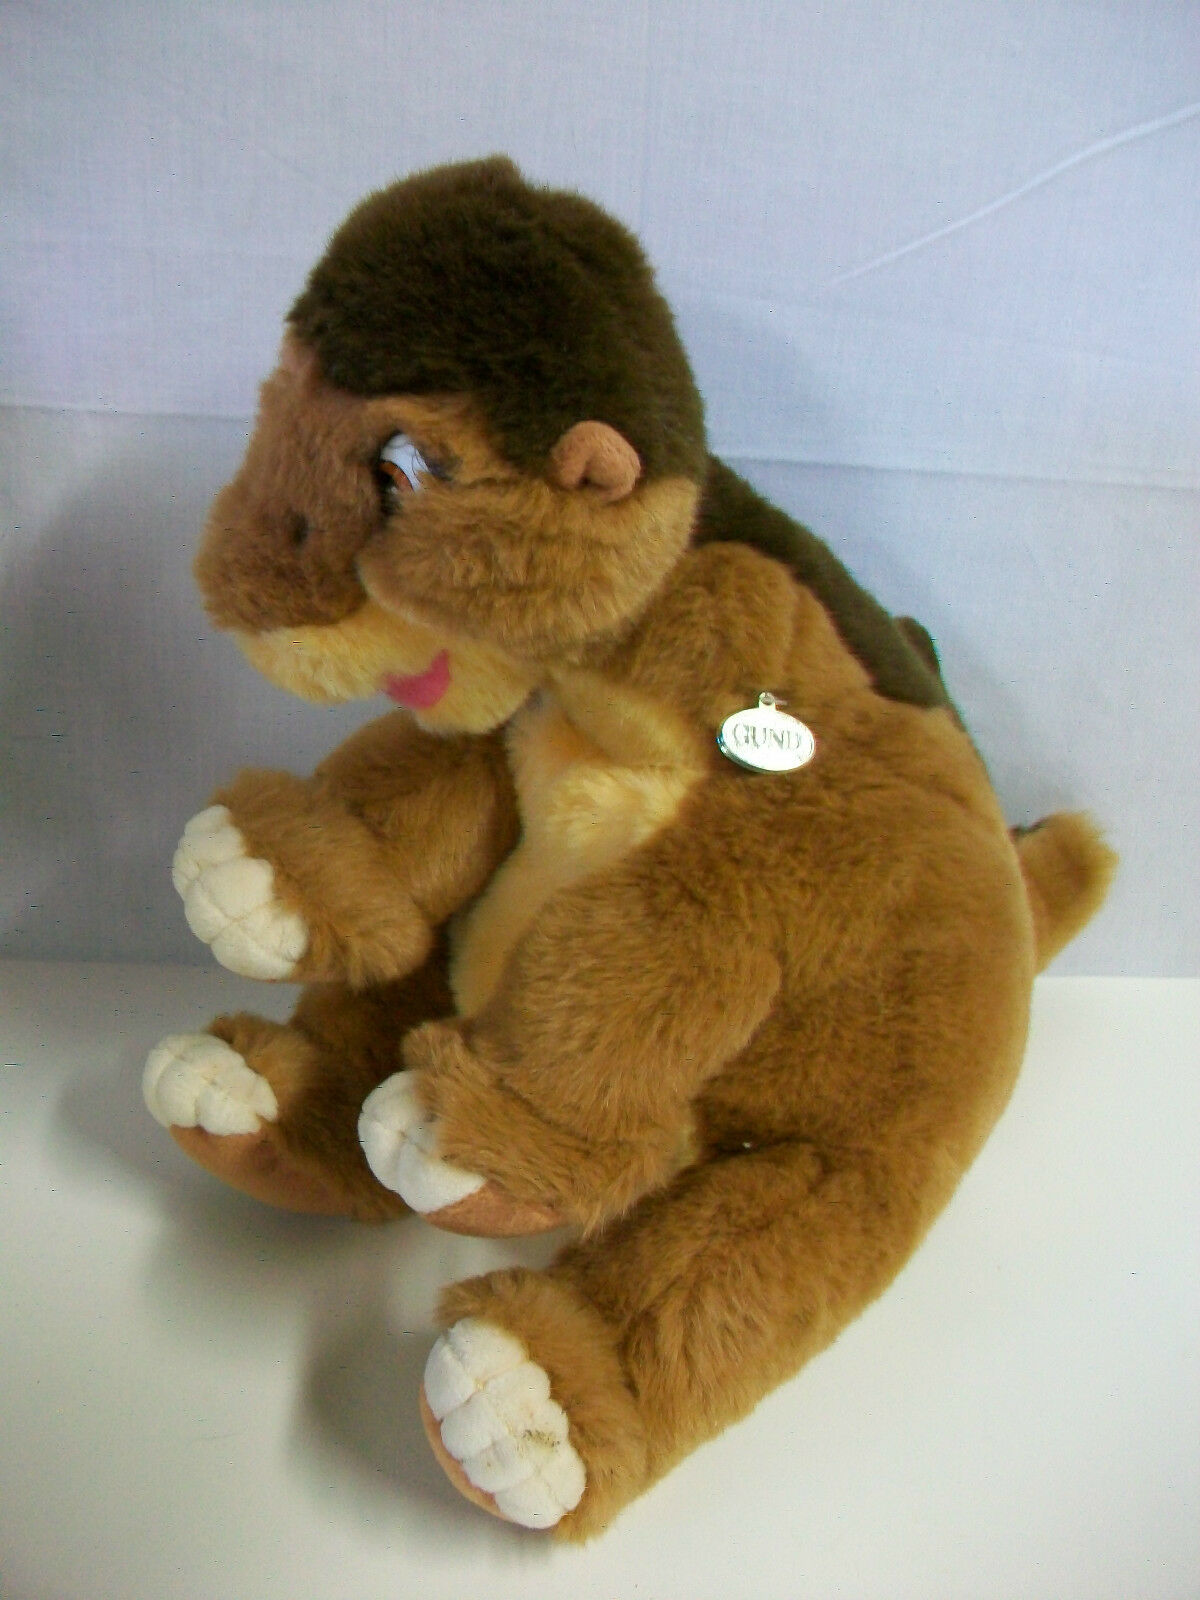 1988 Gund JC Penney Littlefoot Land Before Time Plush Toy 17